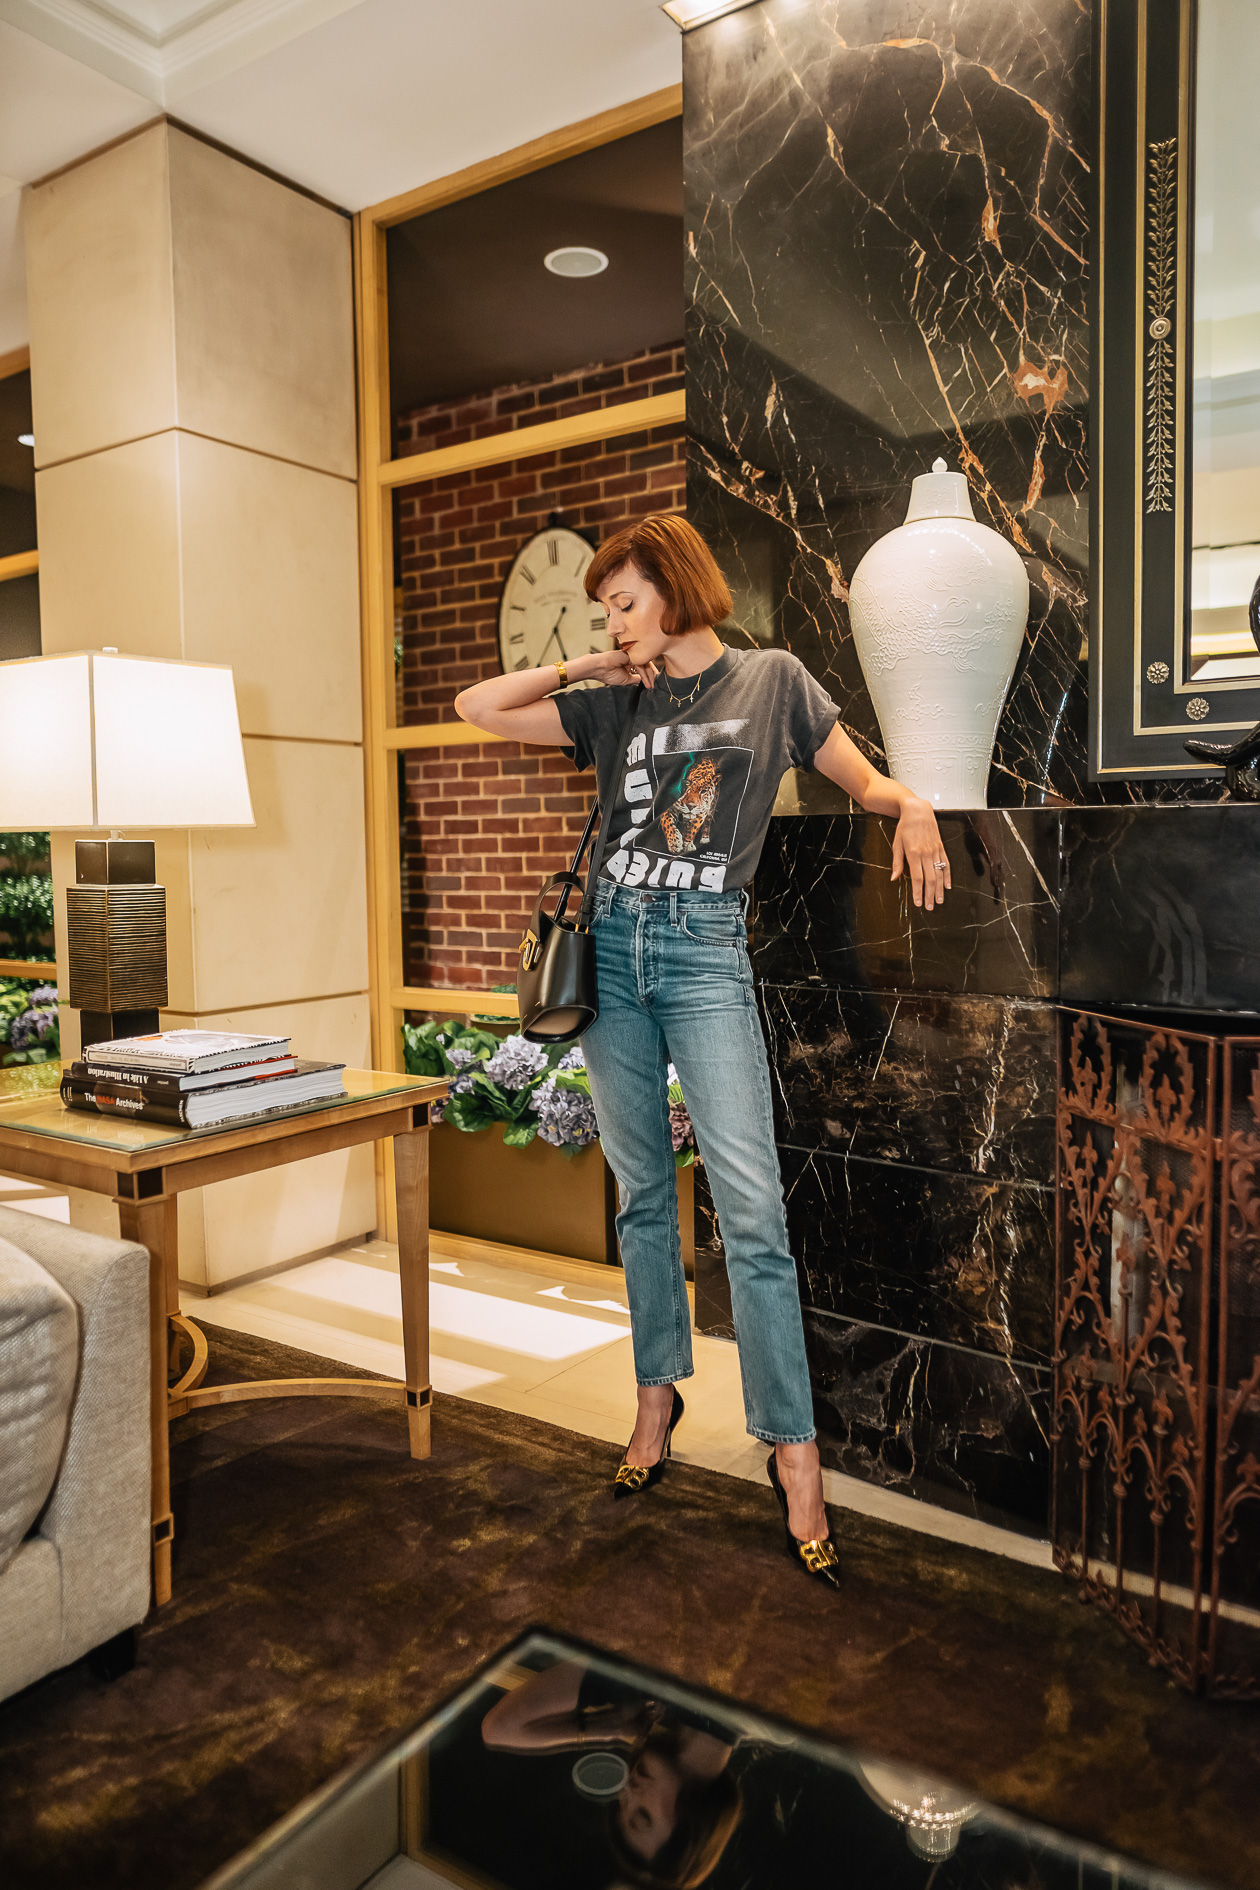 Anine Bing t-shirt and Citizens jeans